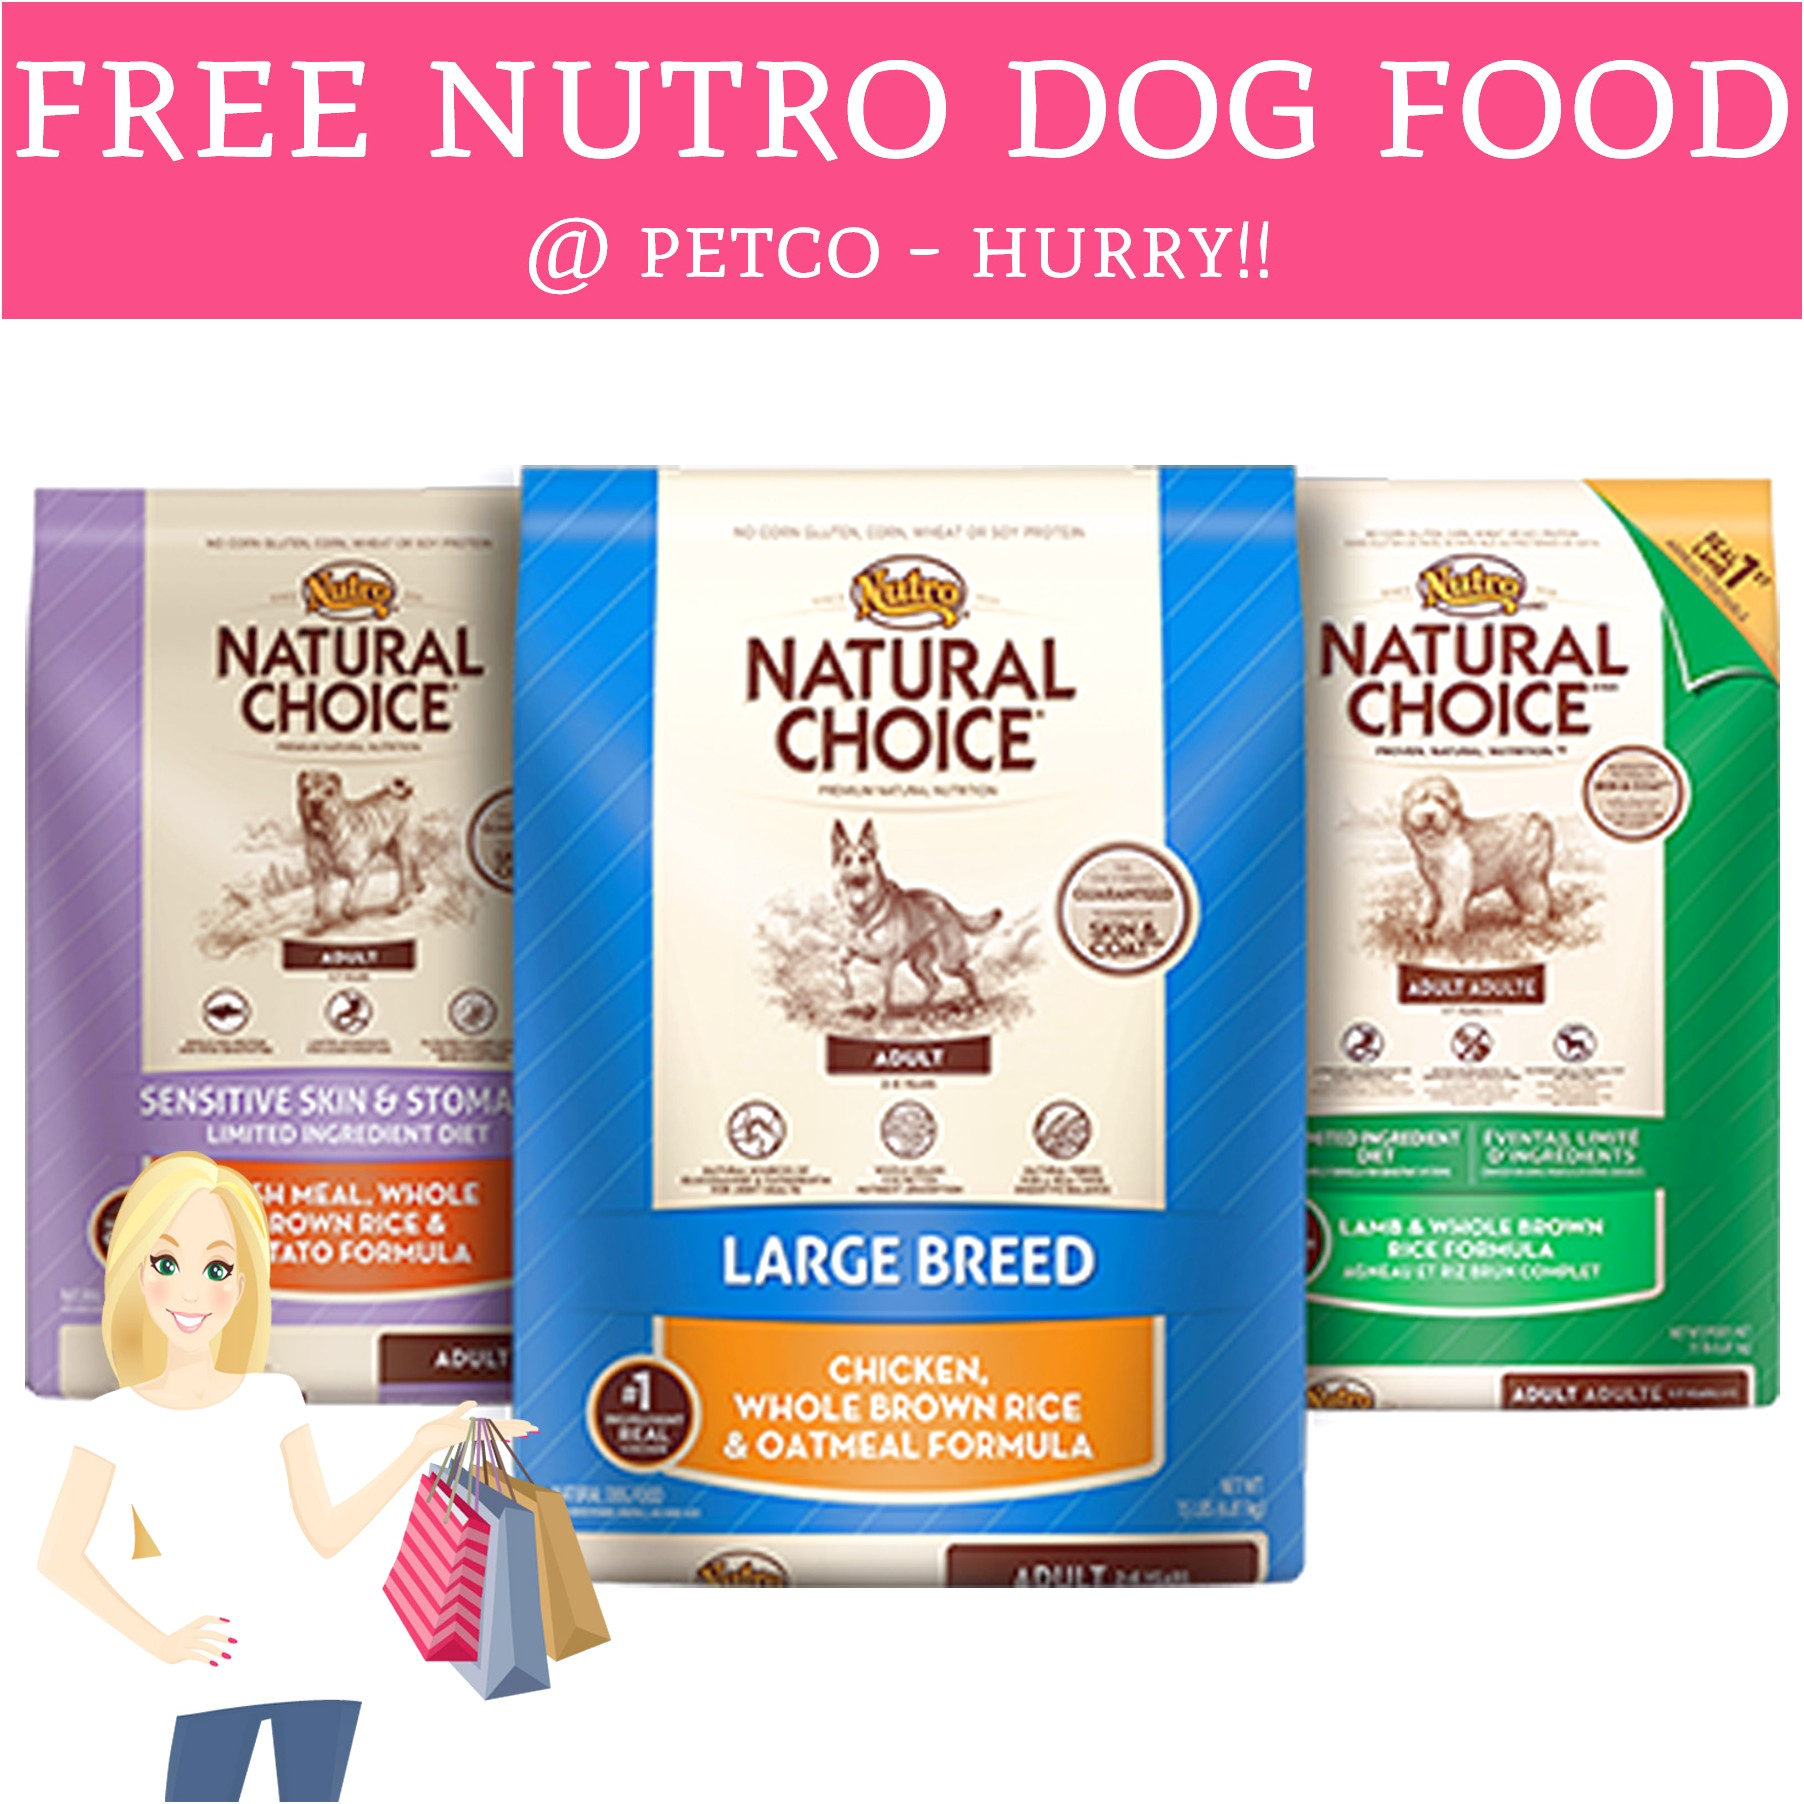 Petco Nutro Dog Food